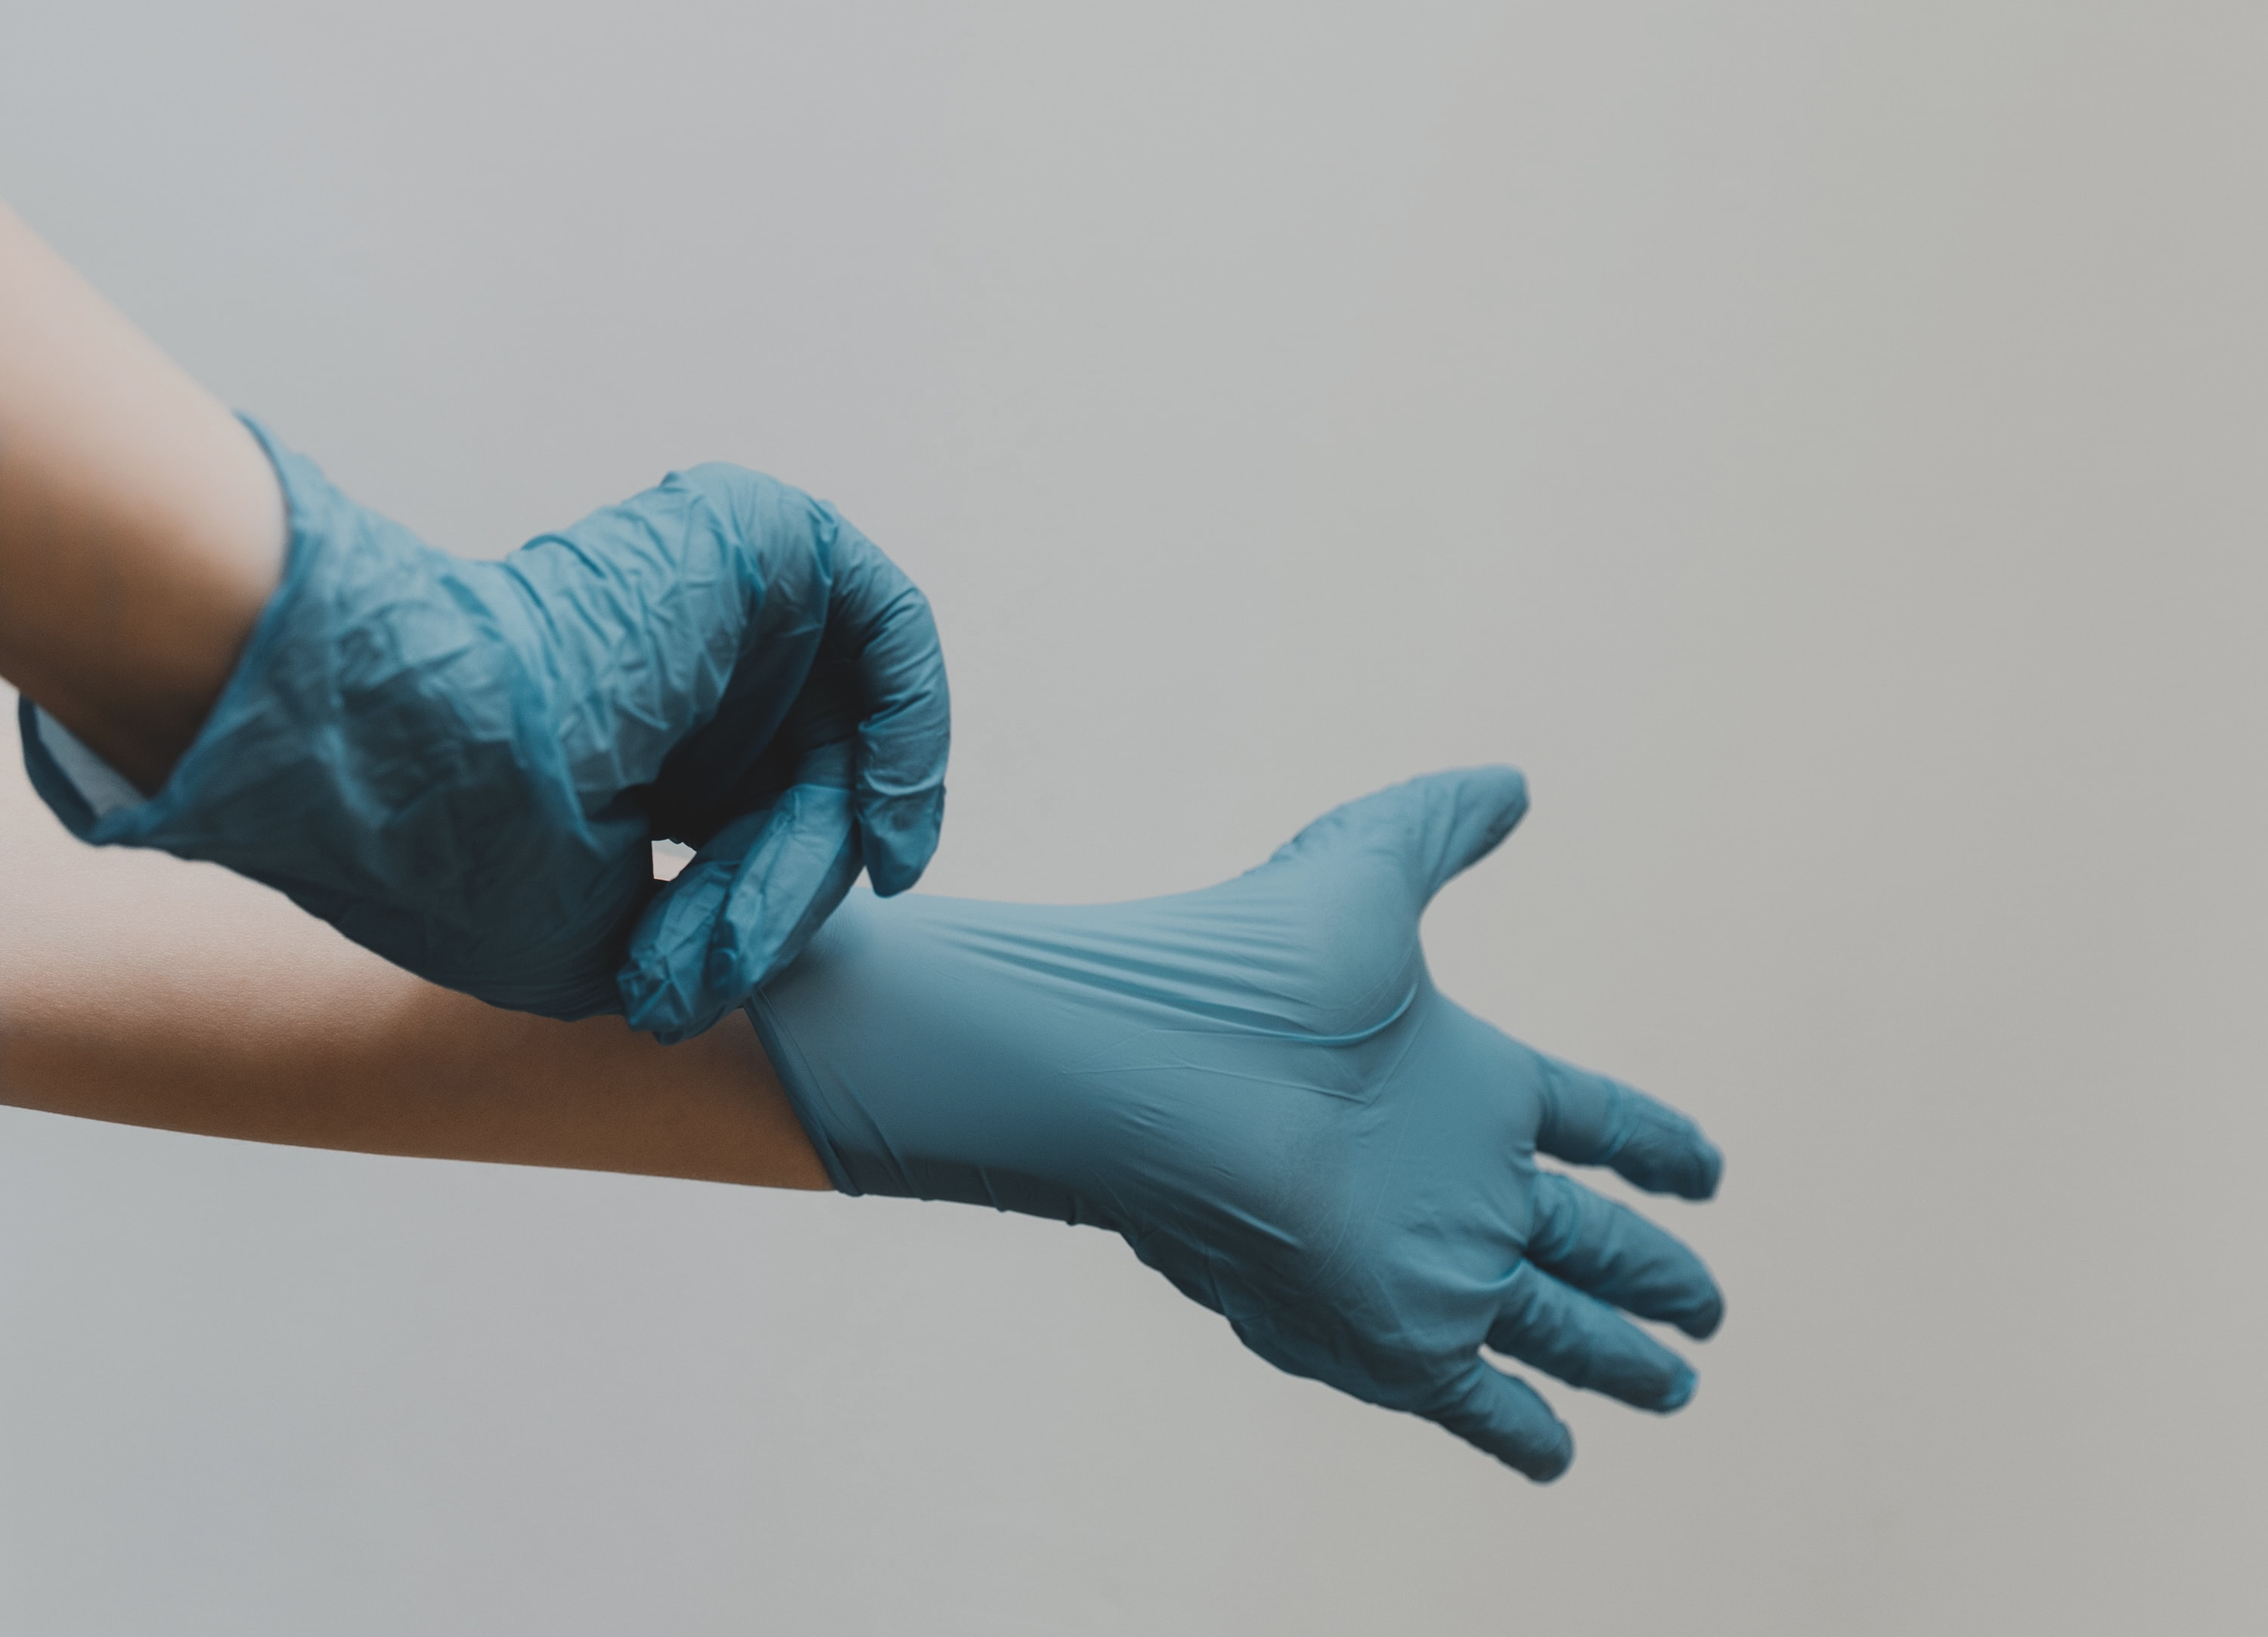 A pair of Caucasian hands pulling on blue medical gloves. The background is off white